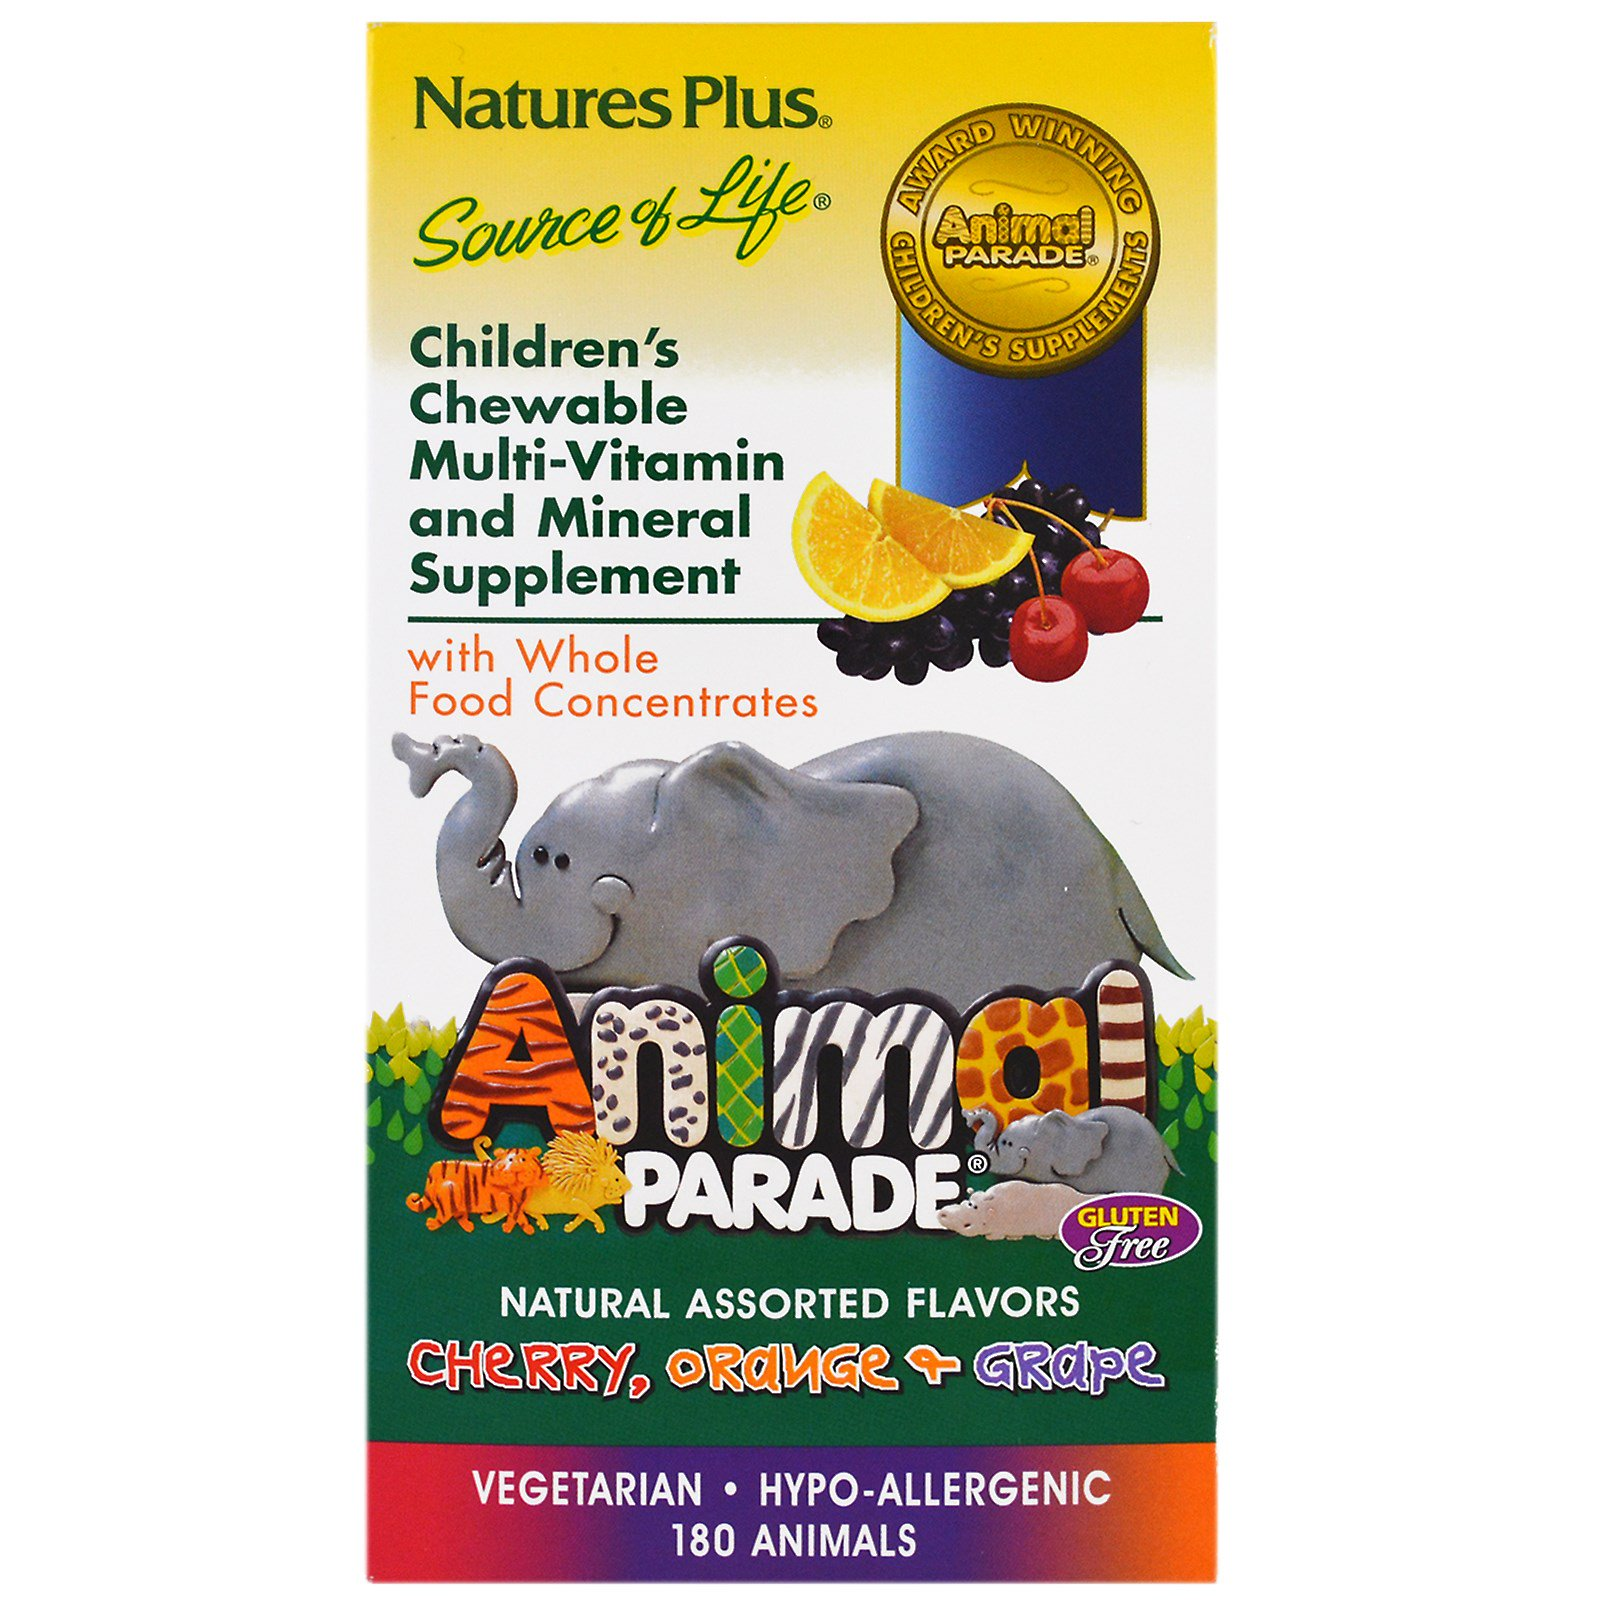 Image of Children's Chewable Multi-Vitamin & Mineral, Assorted Flavors (180 Animals) - Nature's Plus 0097467299825